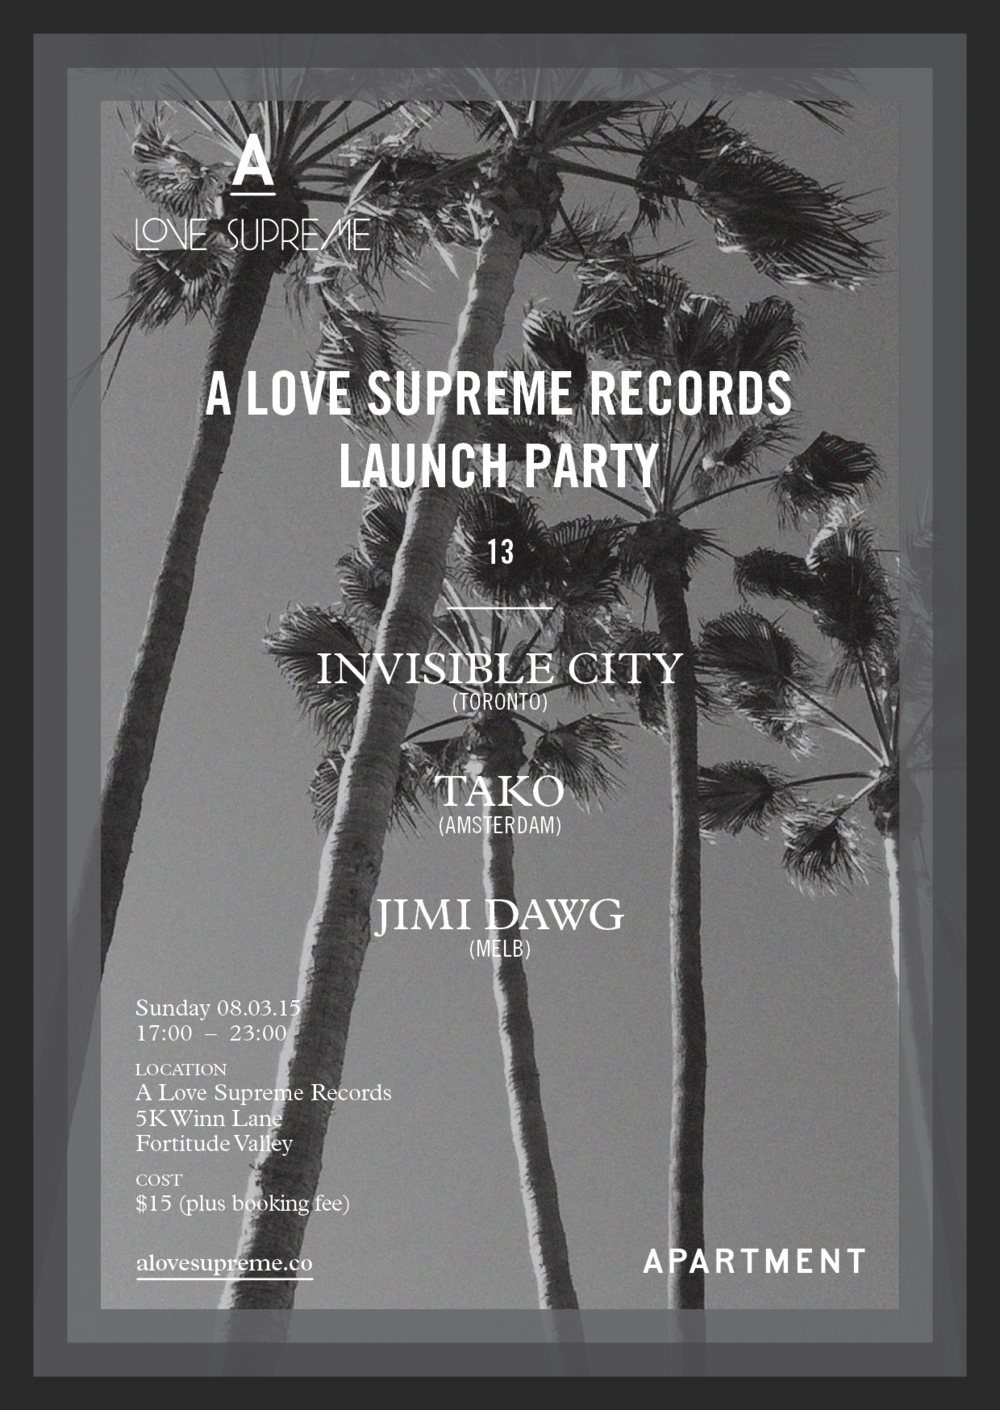 ALS-alovesupreme-13-invisible-city-postcard-press-.png